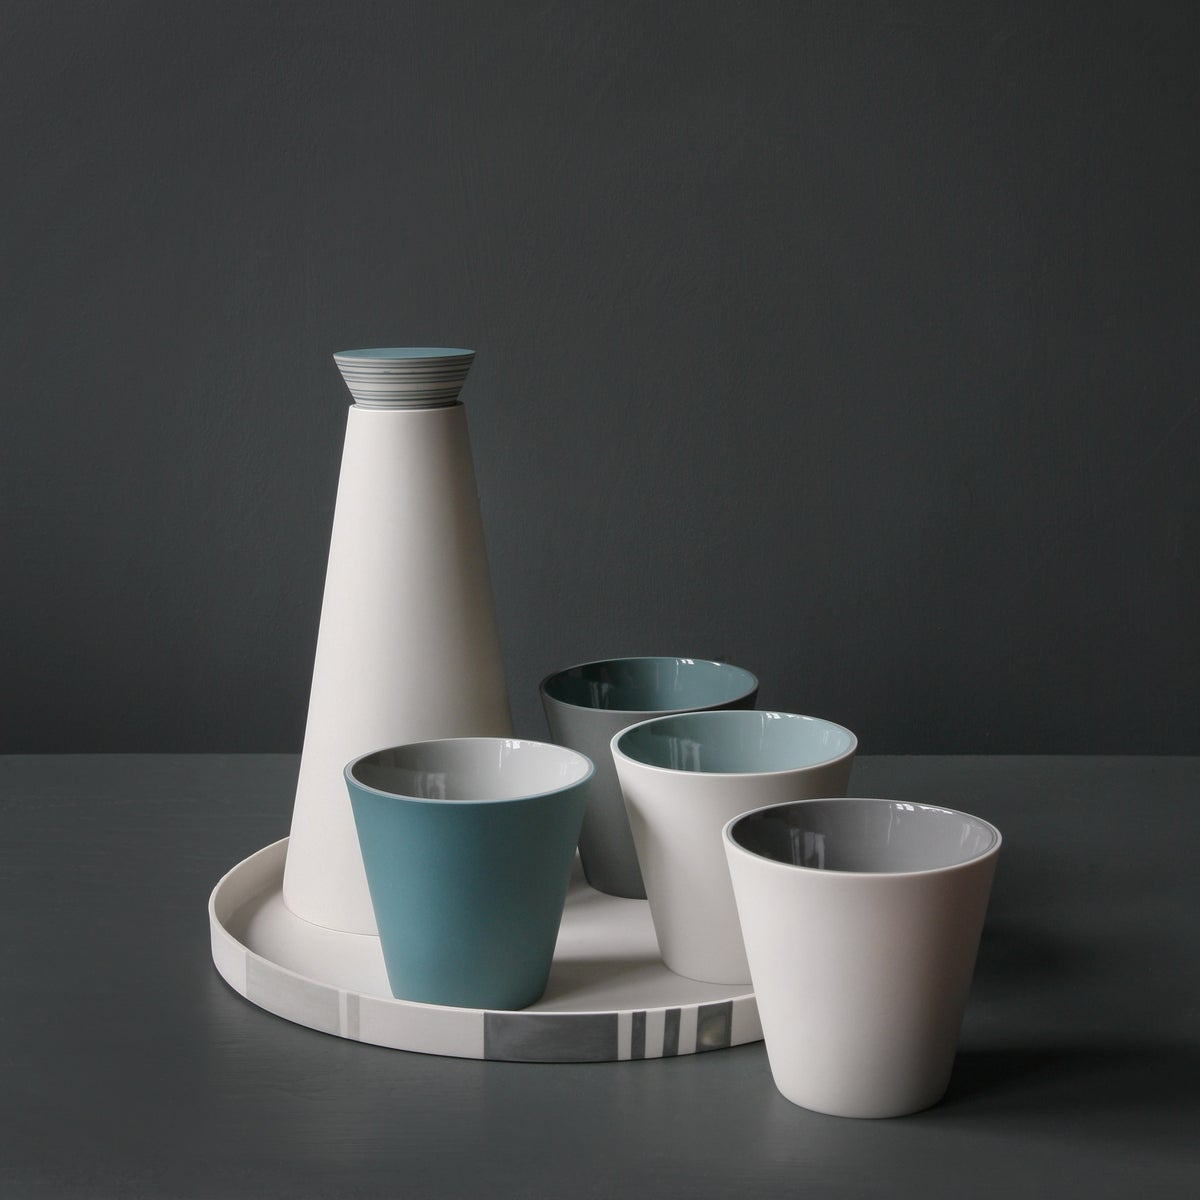 Image of Carafe Set by Jill Shaddock.